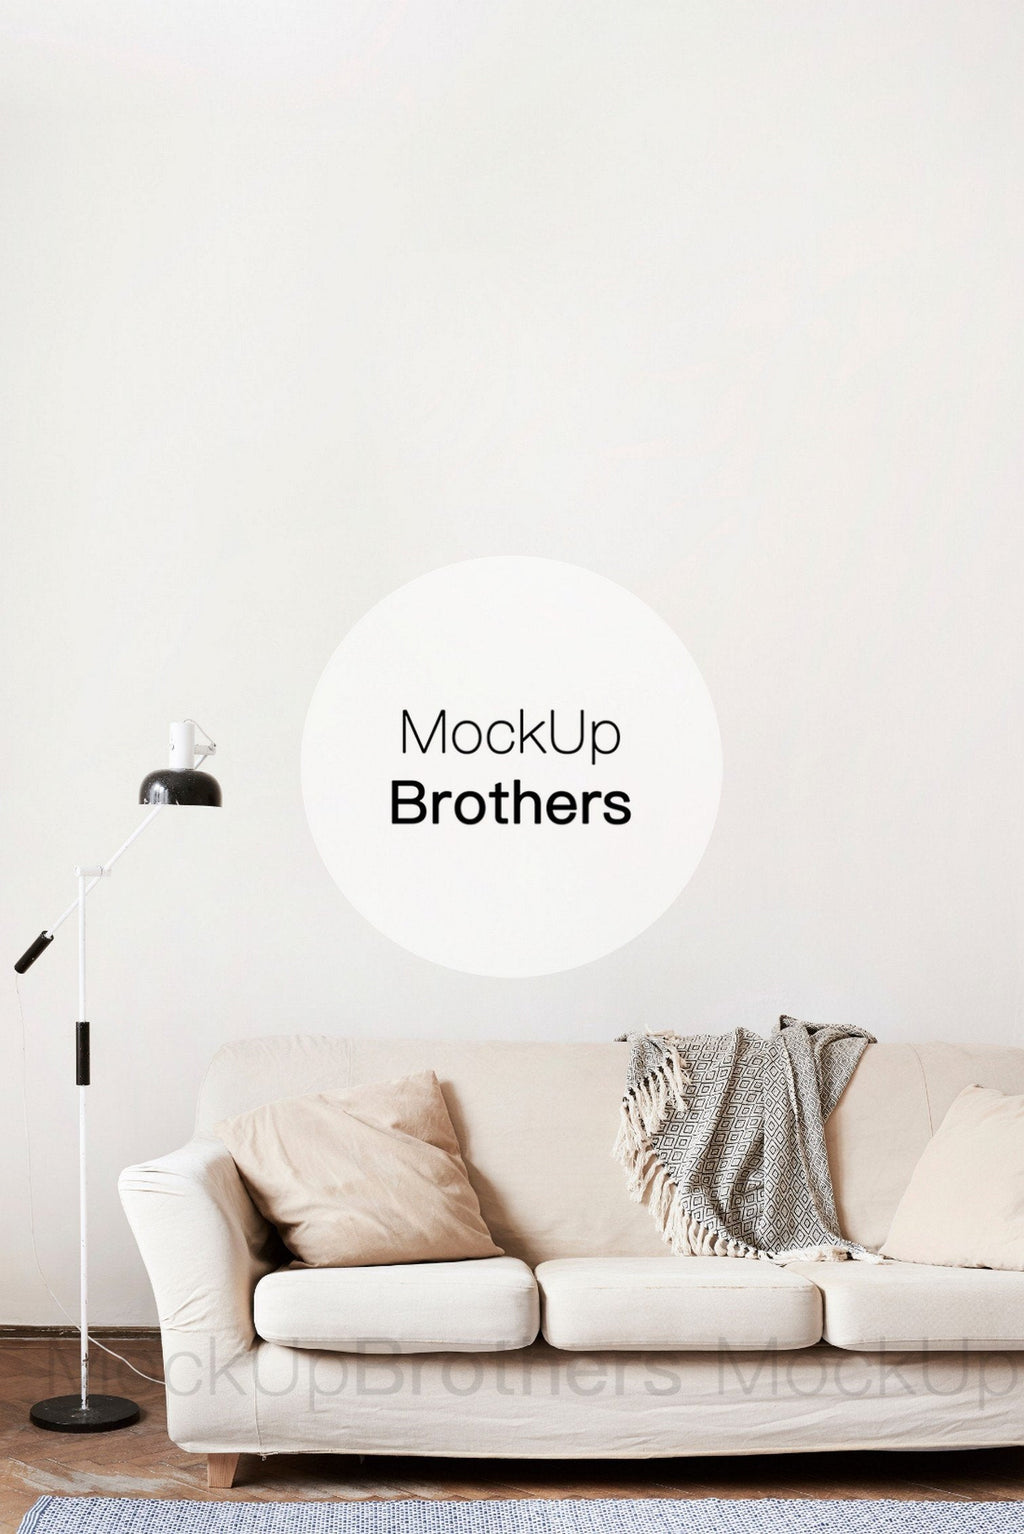 Empty wall mockup in living room interior by Mockup Brothers